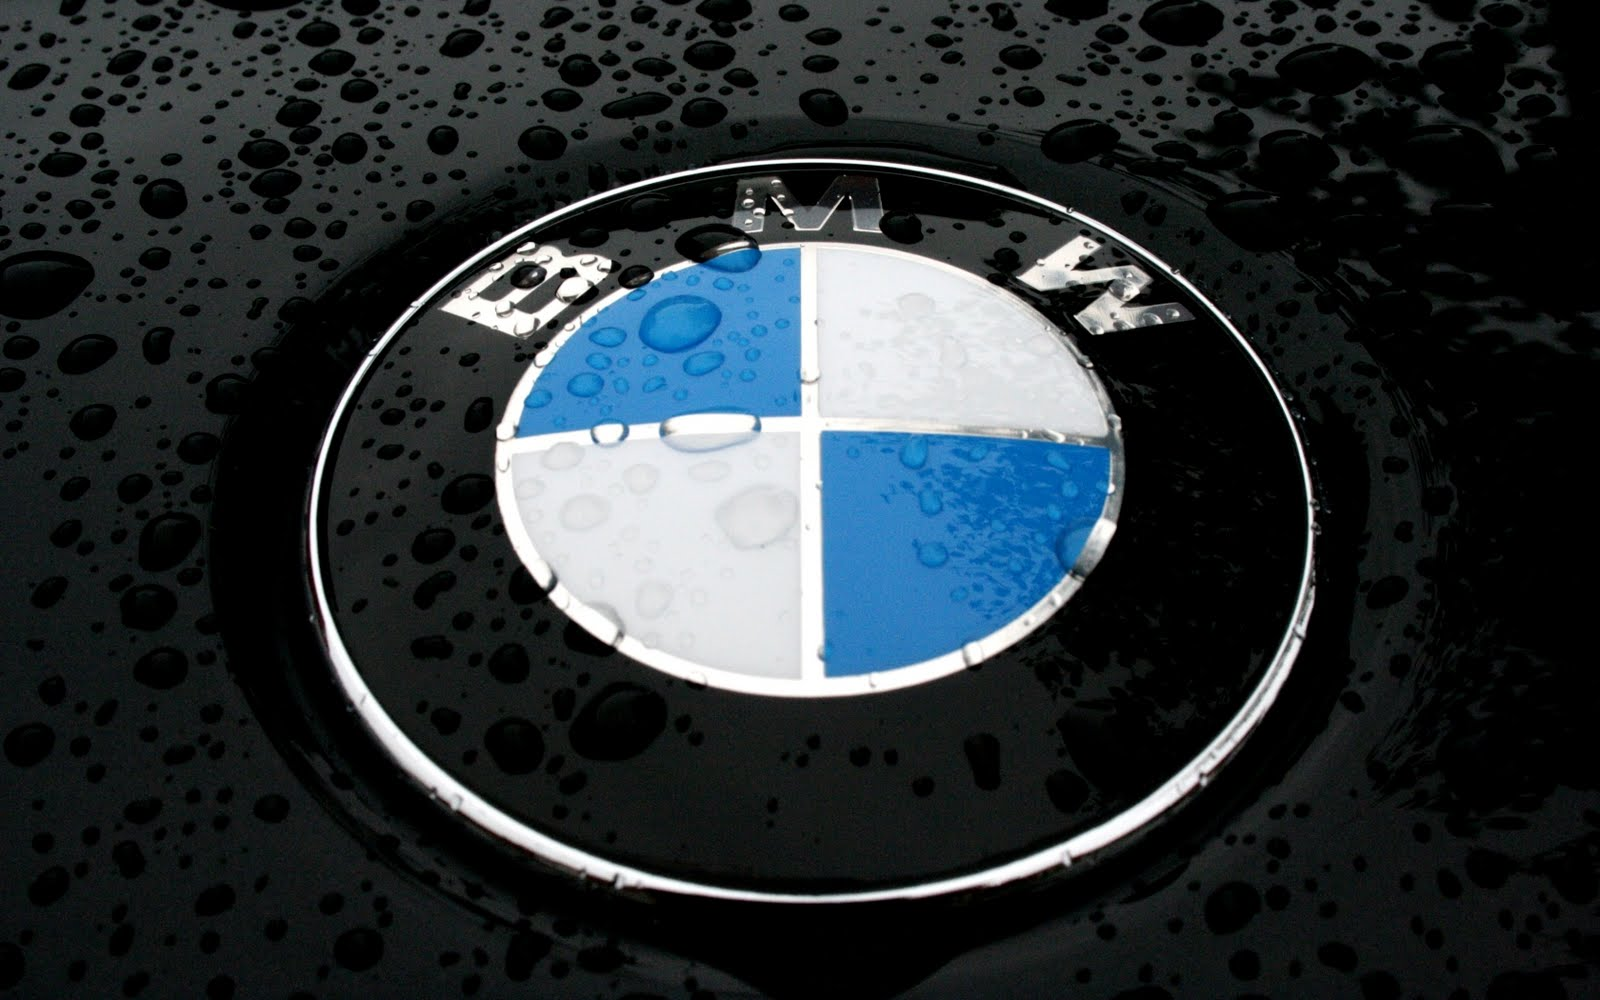 HD BMW Wallpapers/Backgrounds For Free Download 1600x1000